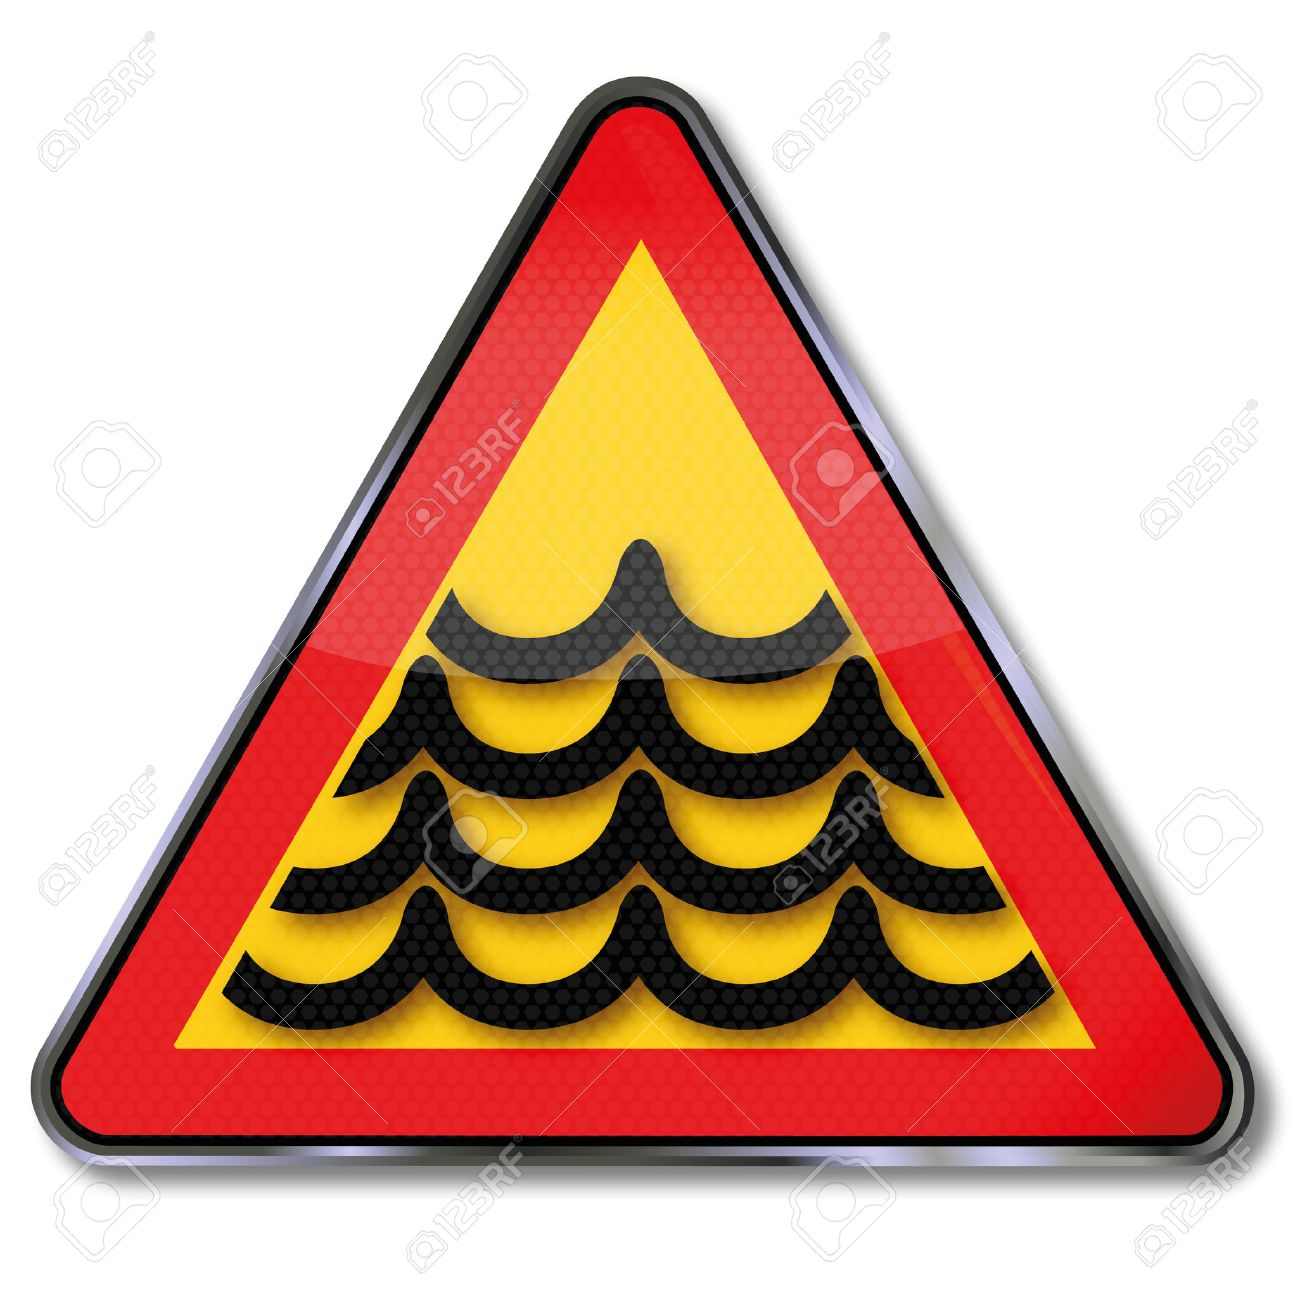 Sign flood and high tide royalty free cliparts vectors and stock sign flood and high tide stock vector 23124584 biocorpaavc